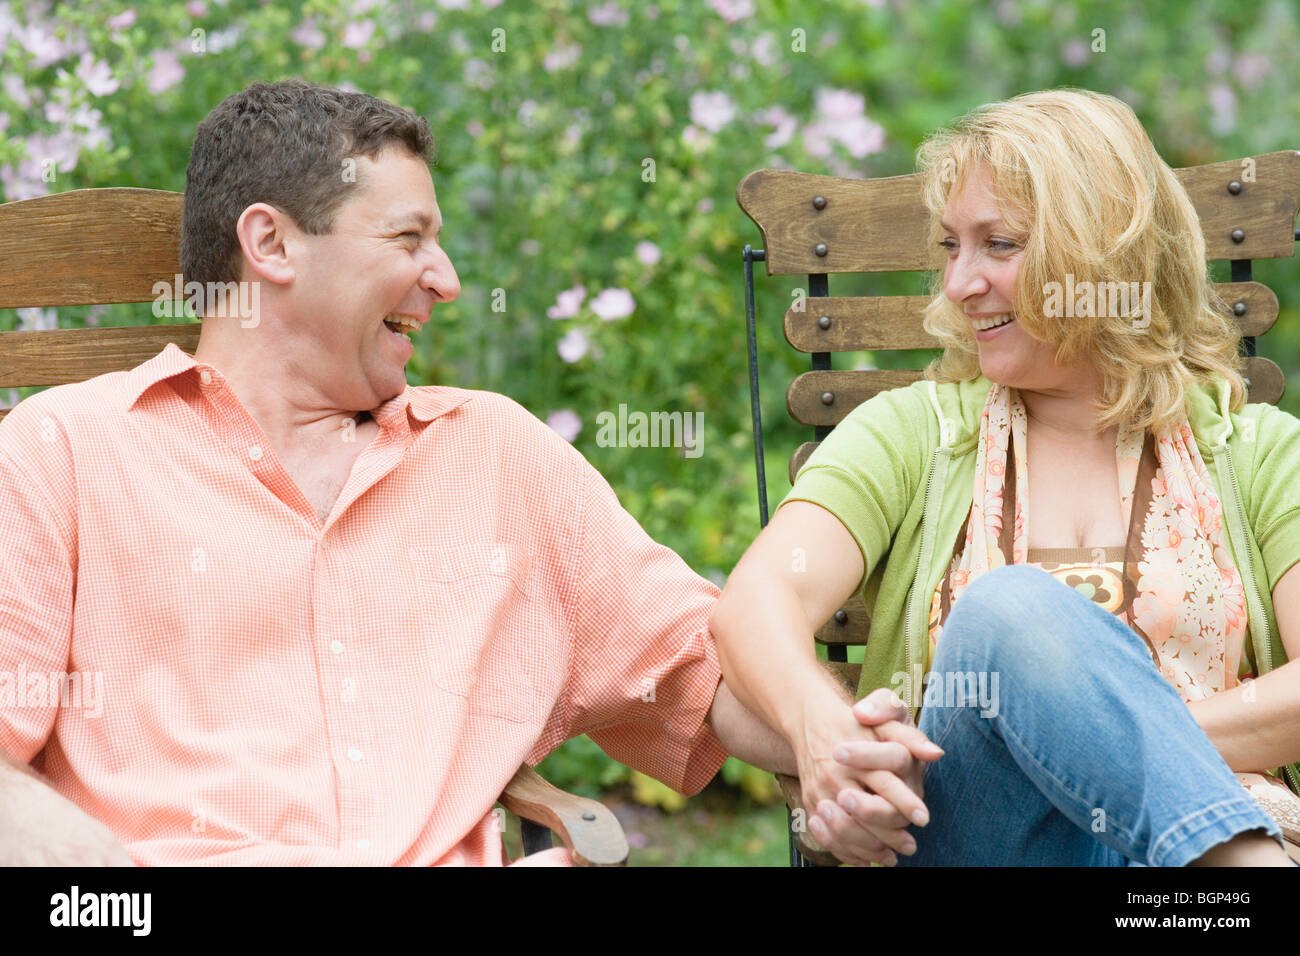 Couple Mature mature couple sitting on chairs and holding each other's hands stock